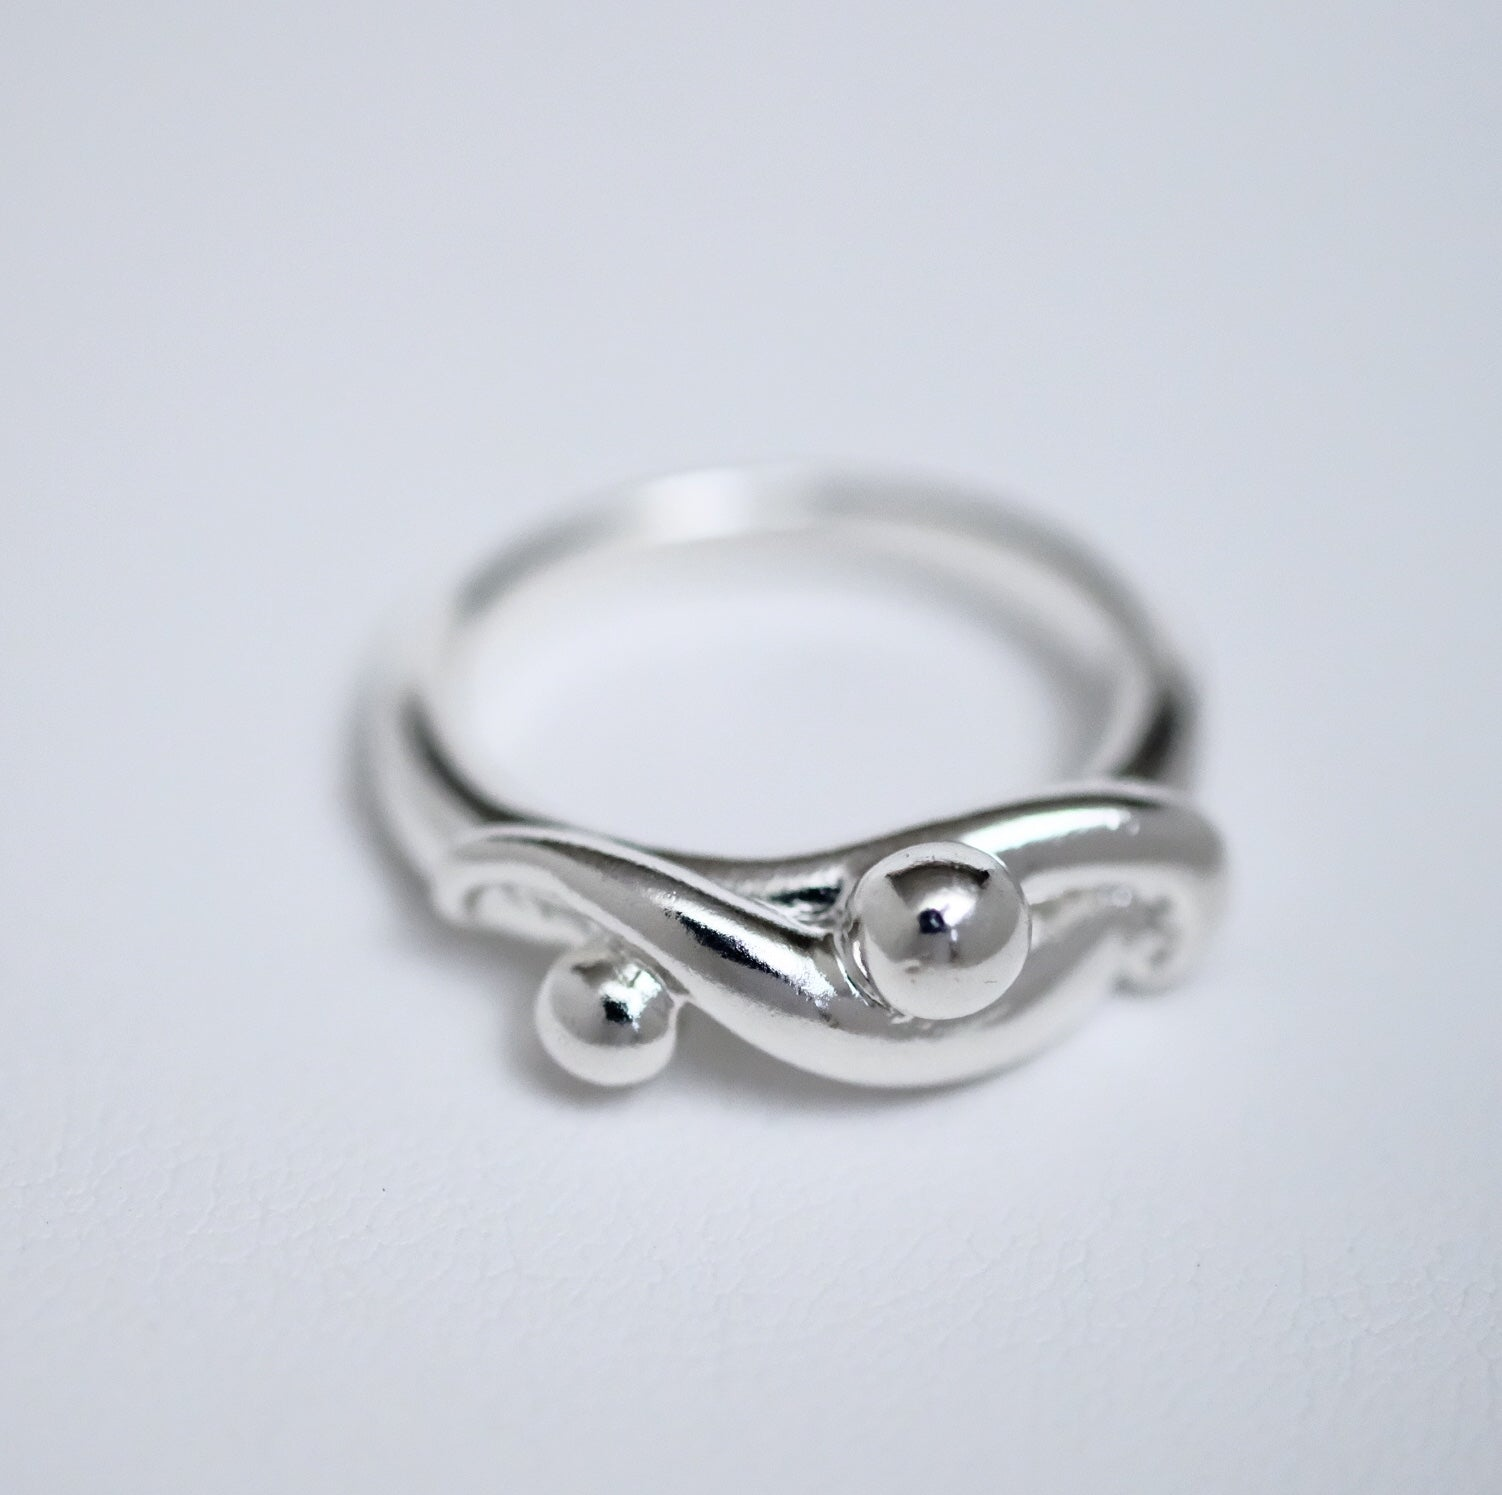 Why dream of a silver ring